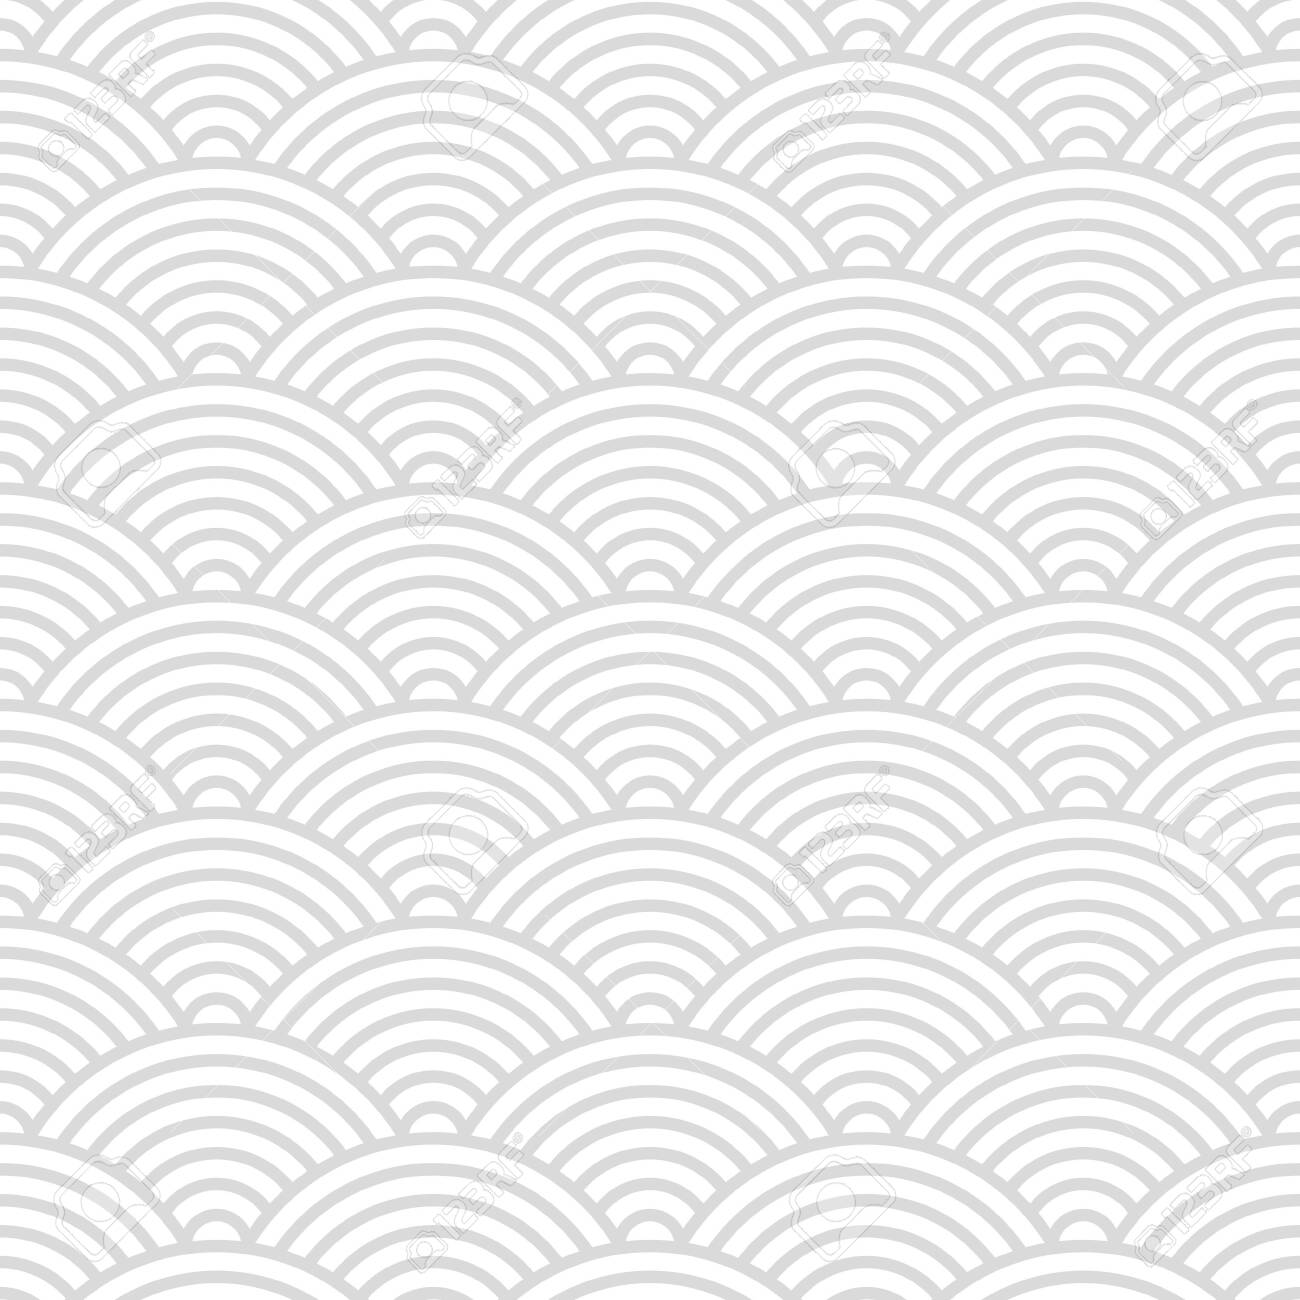 Seamless pattern with Japanese style gray and white circles ornate for your design - 131051687